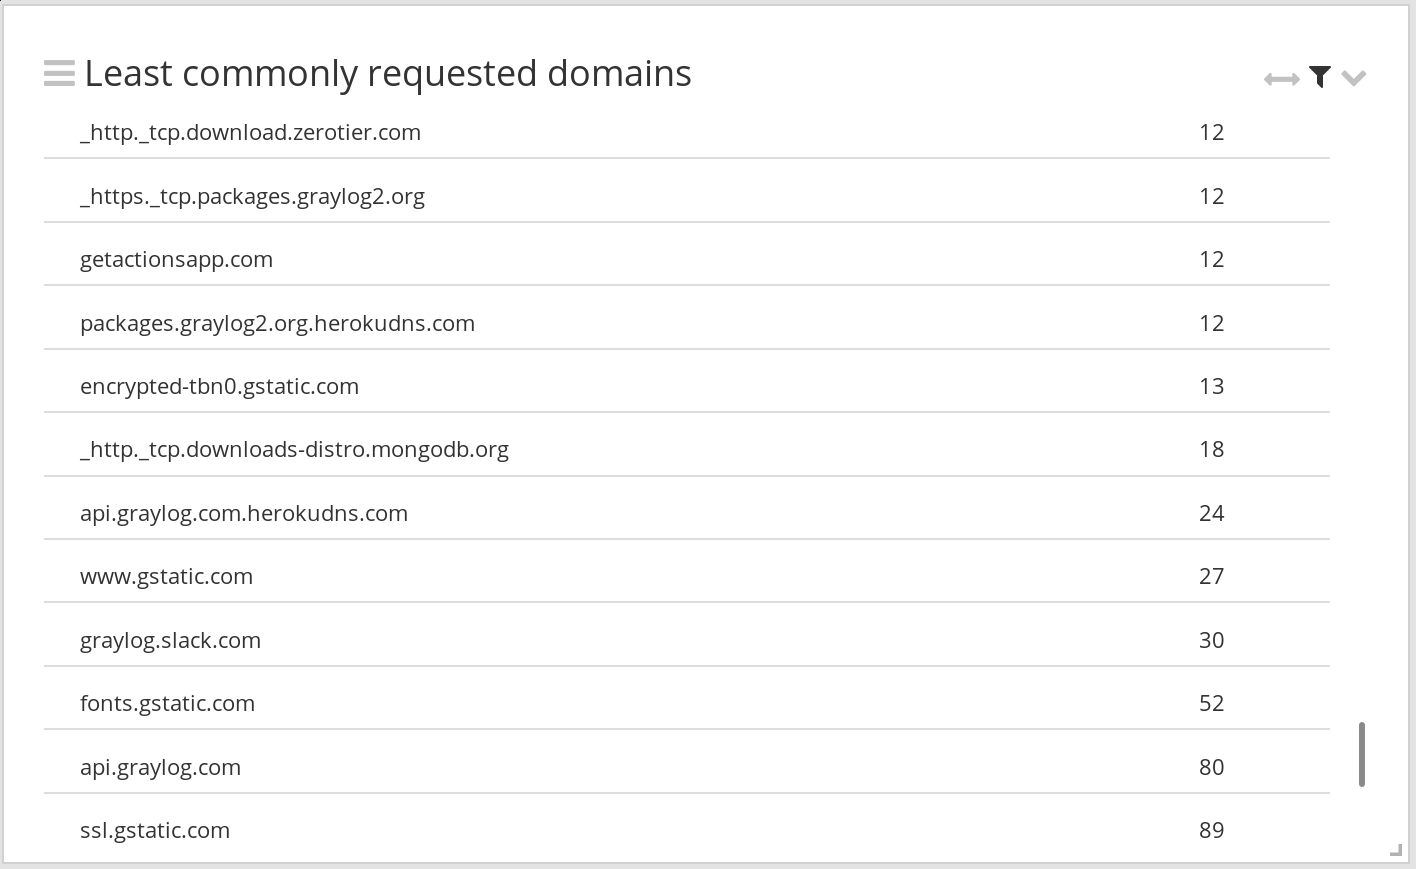 Widget: Least commonly requested domains